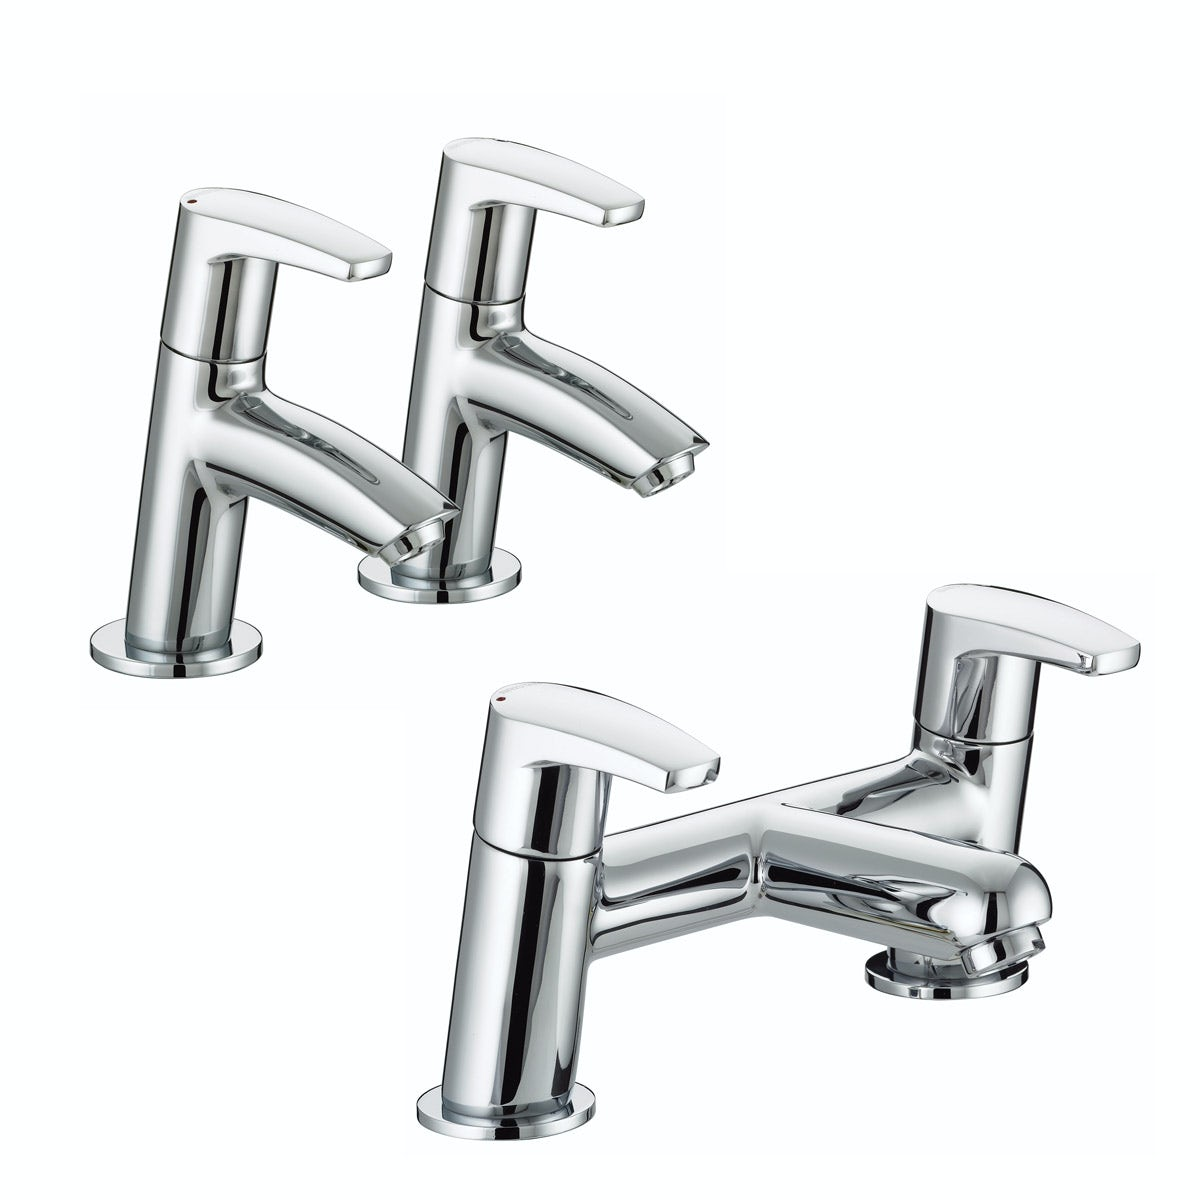 Bristan Orta basin tap and bath mixer tap pack